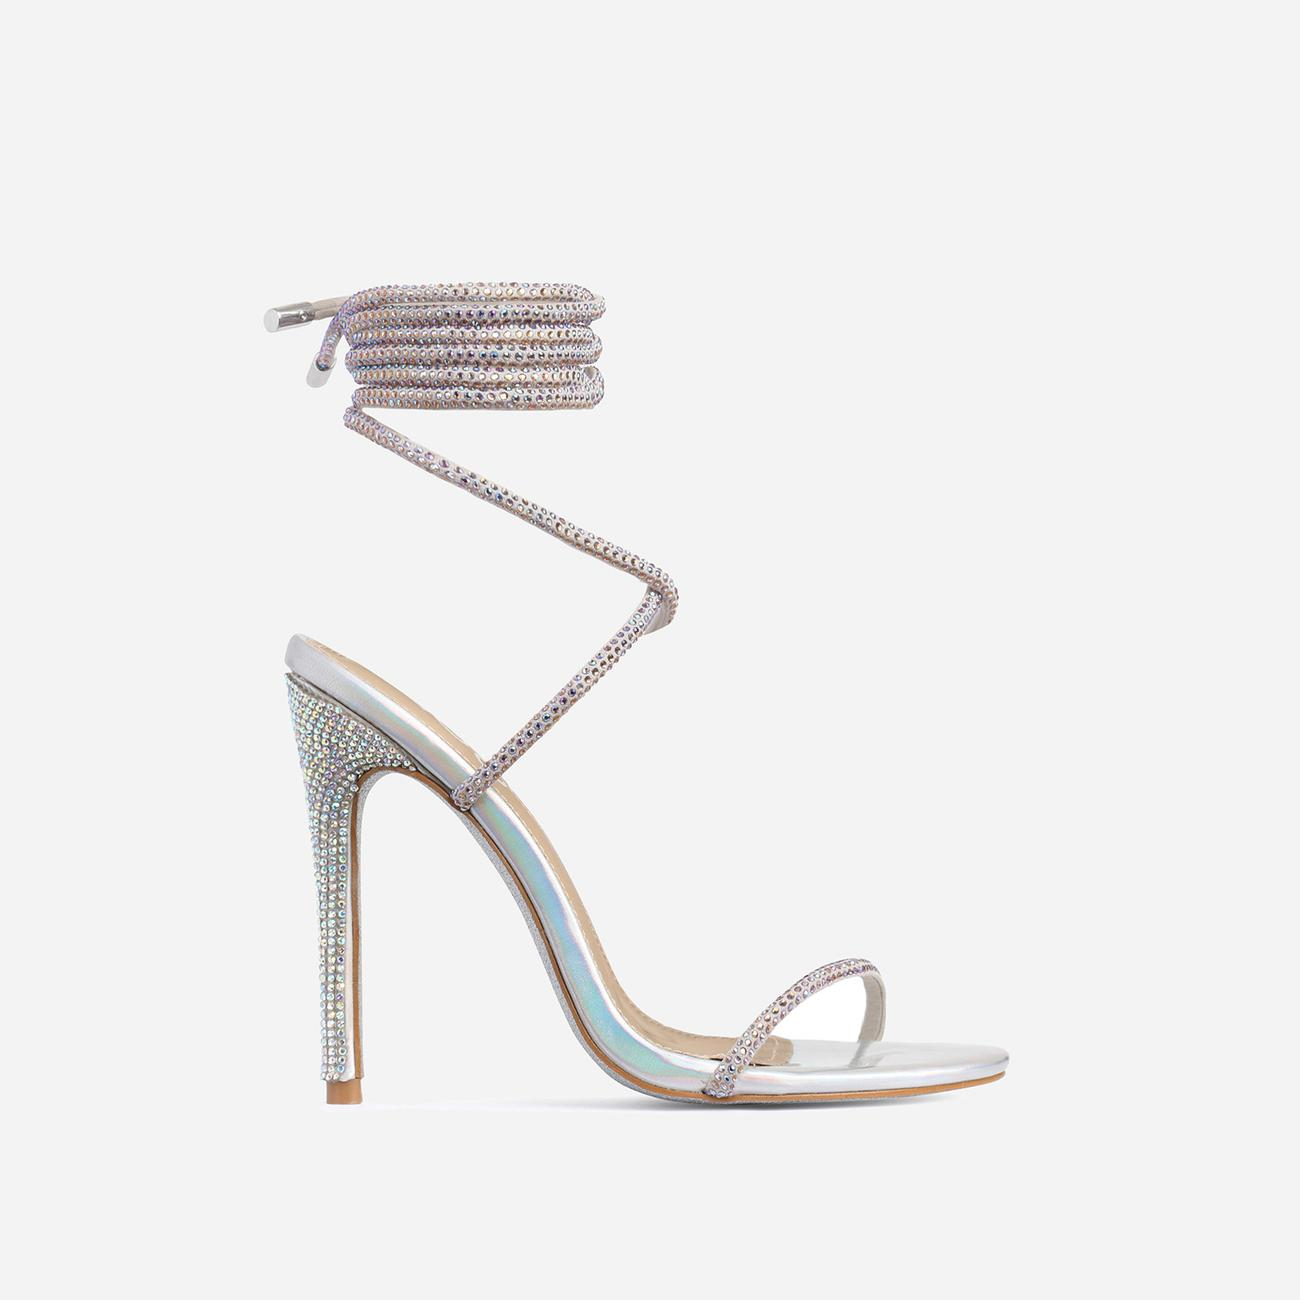 Carmella Glitter Sole Diamante Detail Lace Up Heel In Silver Holographic Faux Leather Image 1